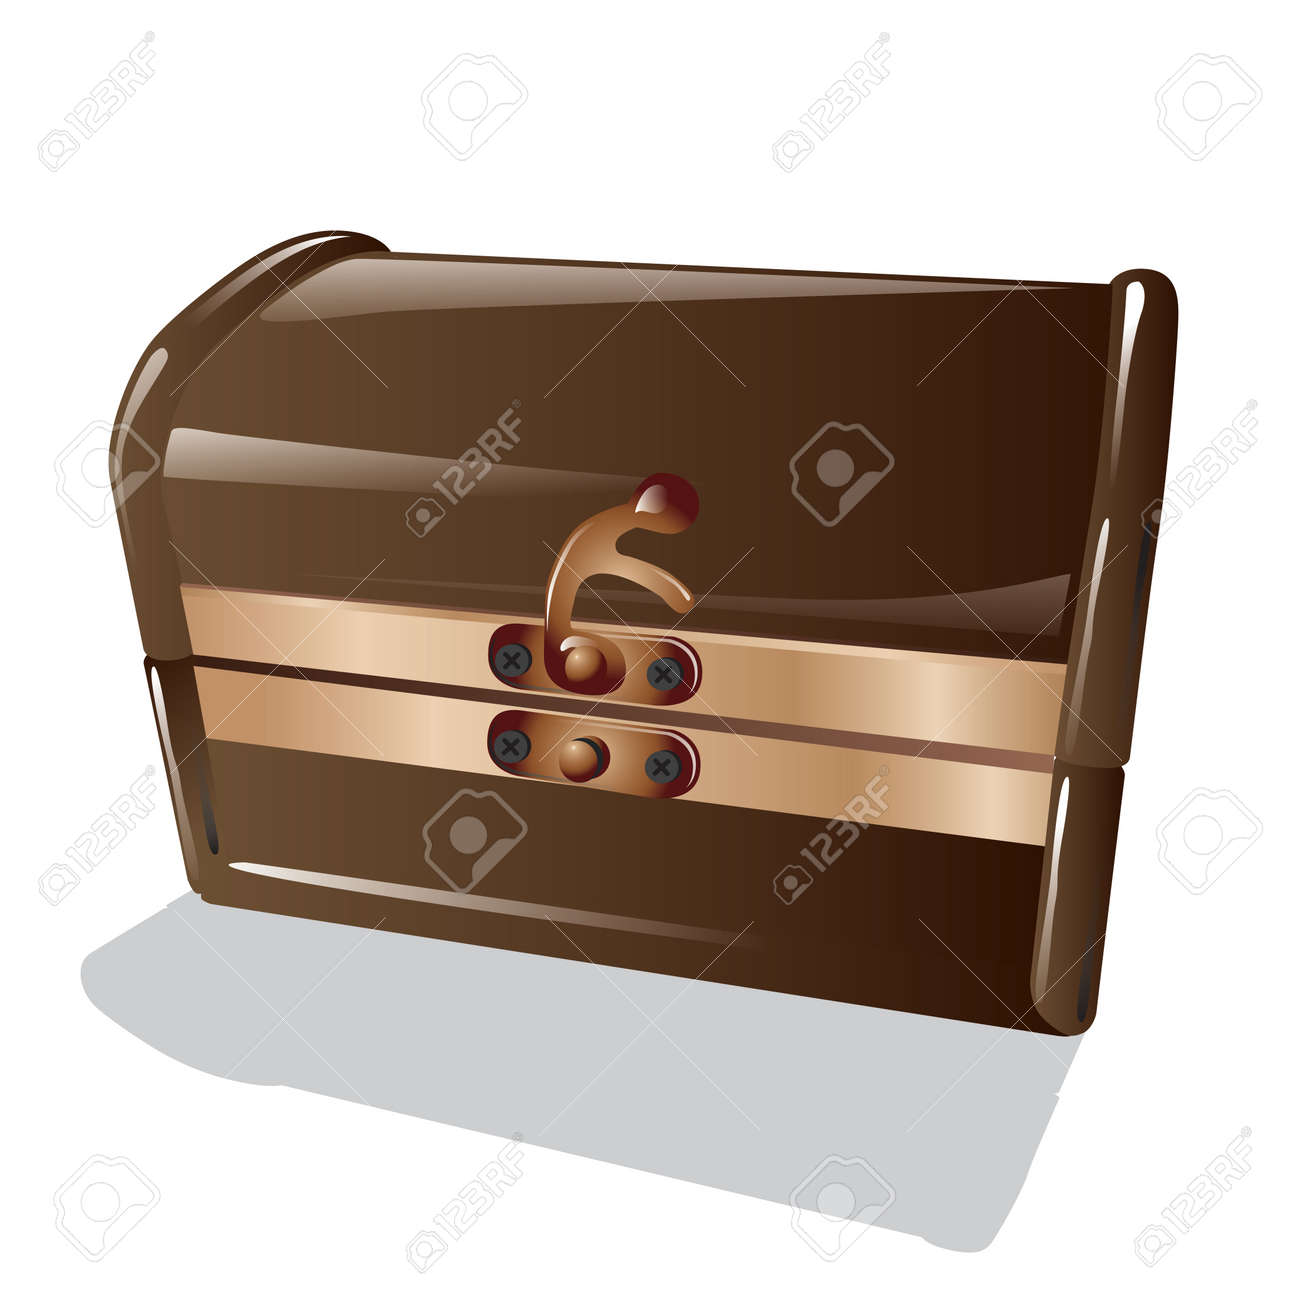 Closed old brown wooden chest isolated on white background. Vector, illustration. Stock Vector - 45222032